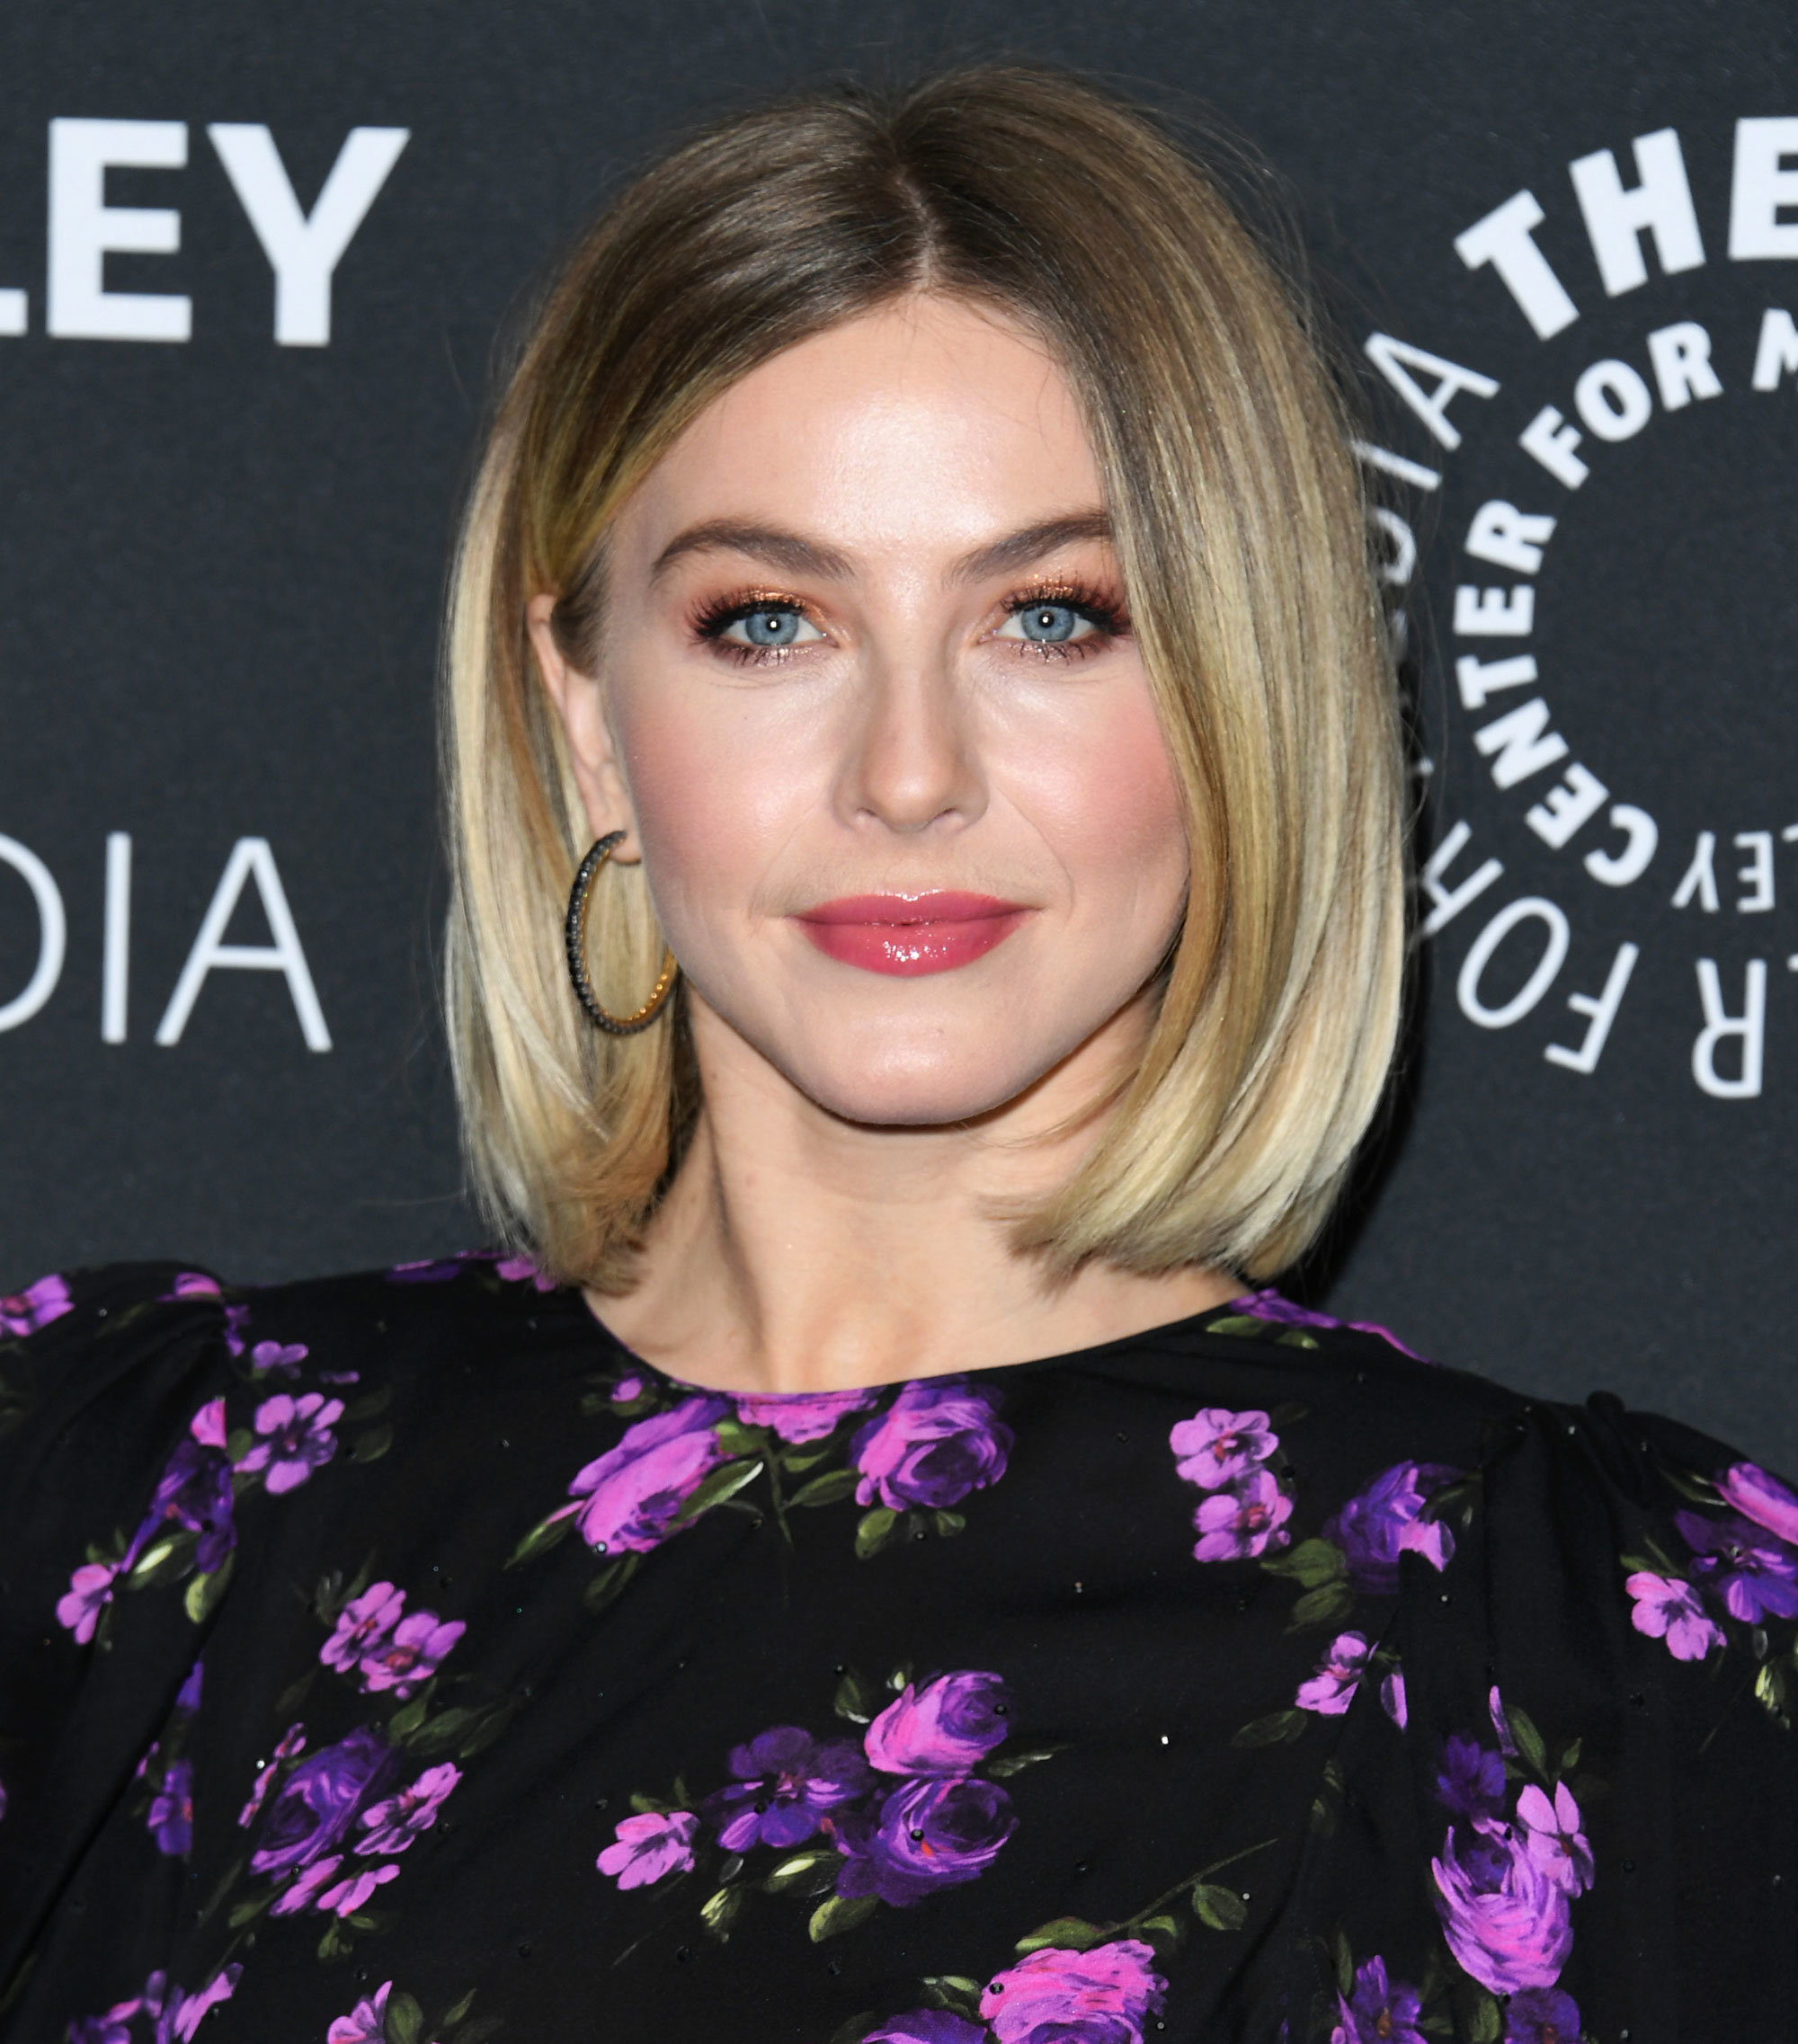 Julianne Hough's New Haircut Is Proof the Blunt Bob Will Still Be Trending in 2020 @InStyle